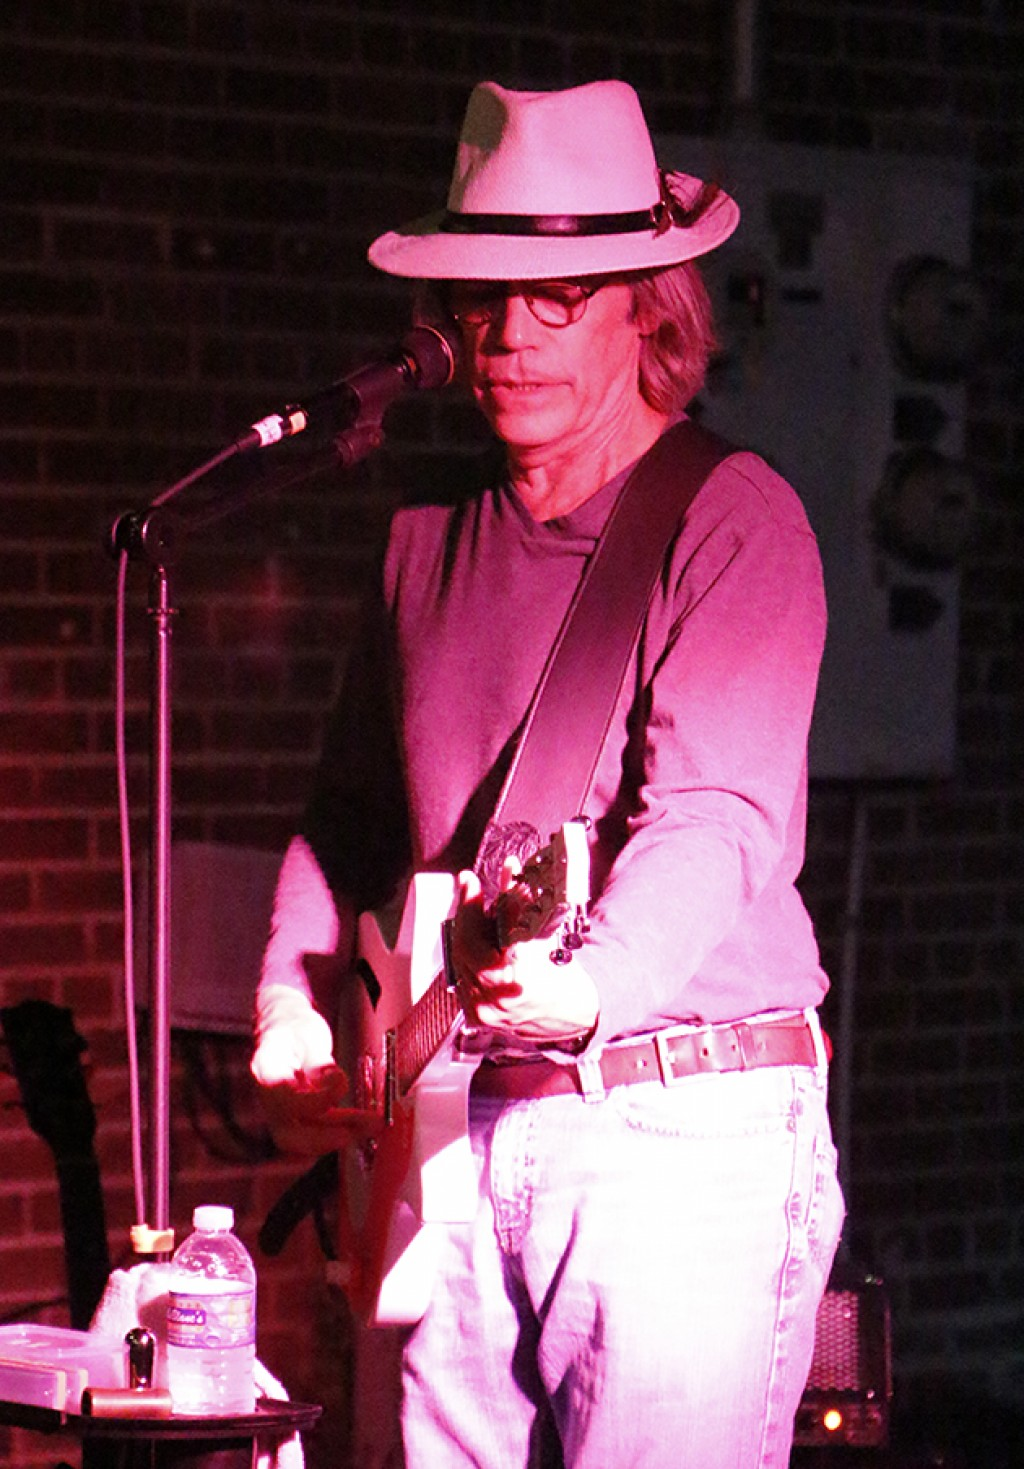 Member of Ricky T and The Rockets, Rick Tobey performed blues and rock songs at the festival for the first time.